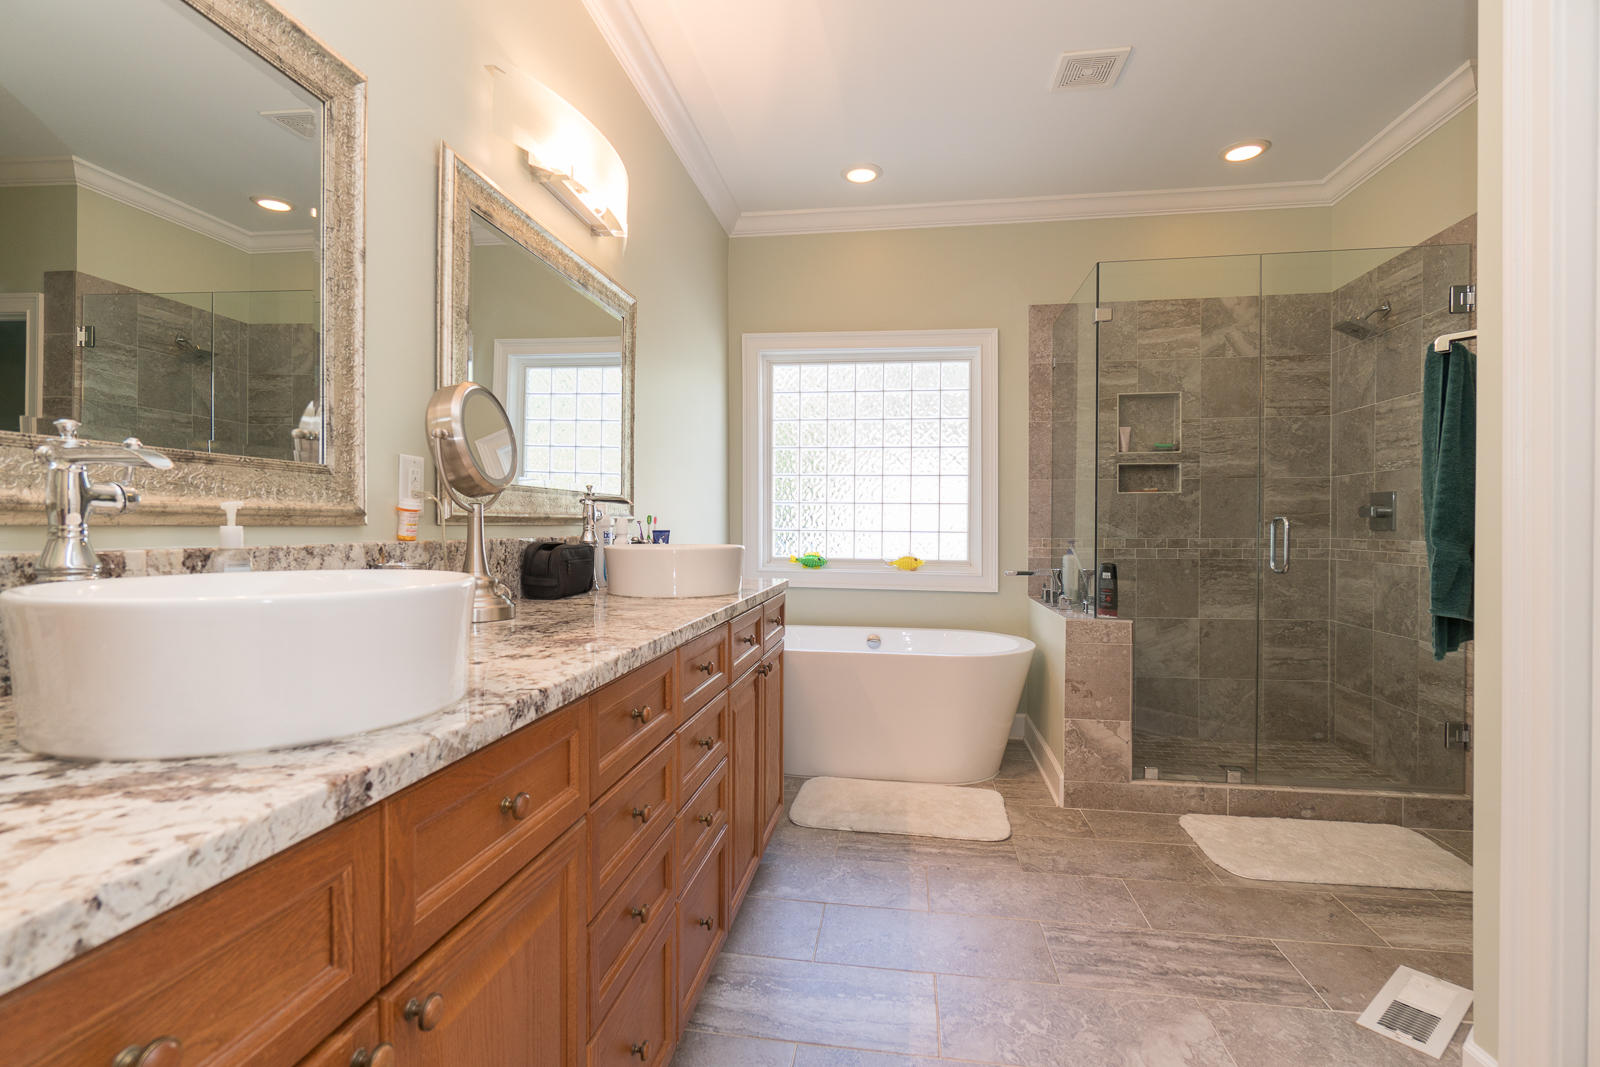 Ainsdale at Shadowmoss Plantation Homes For Sale - 233 Ainsdale, Charleston, SC - 9